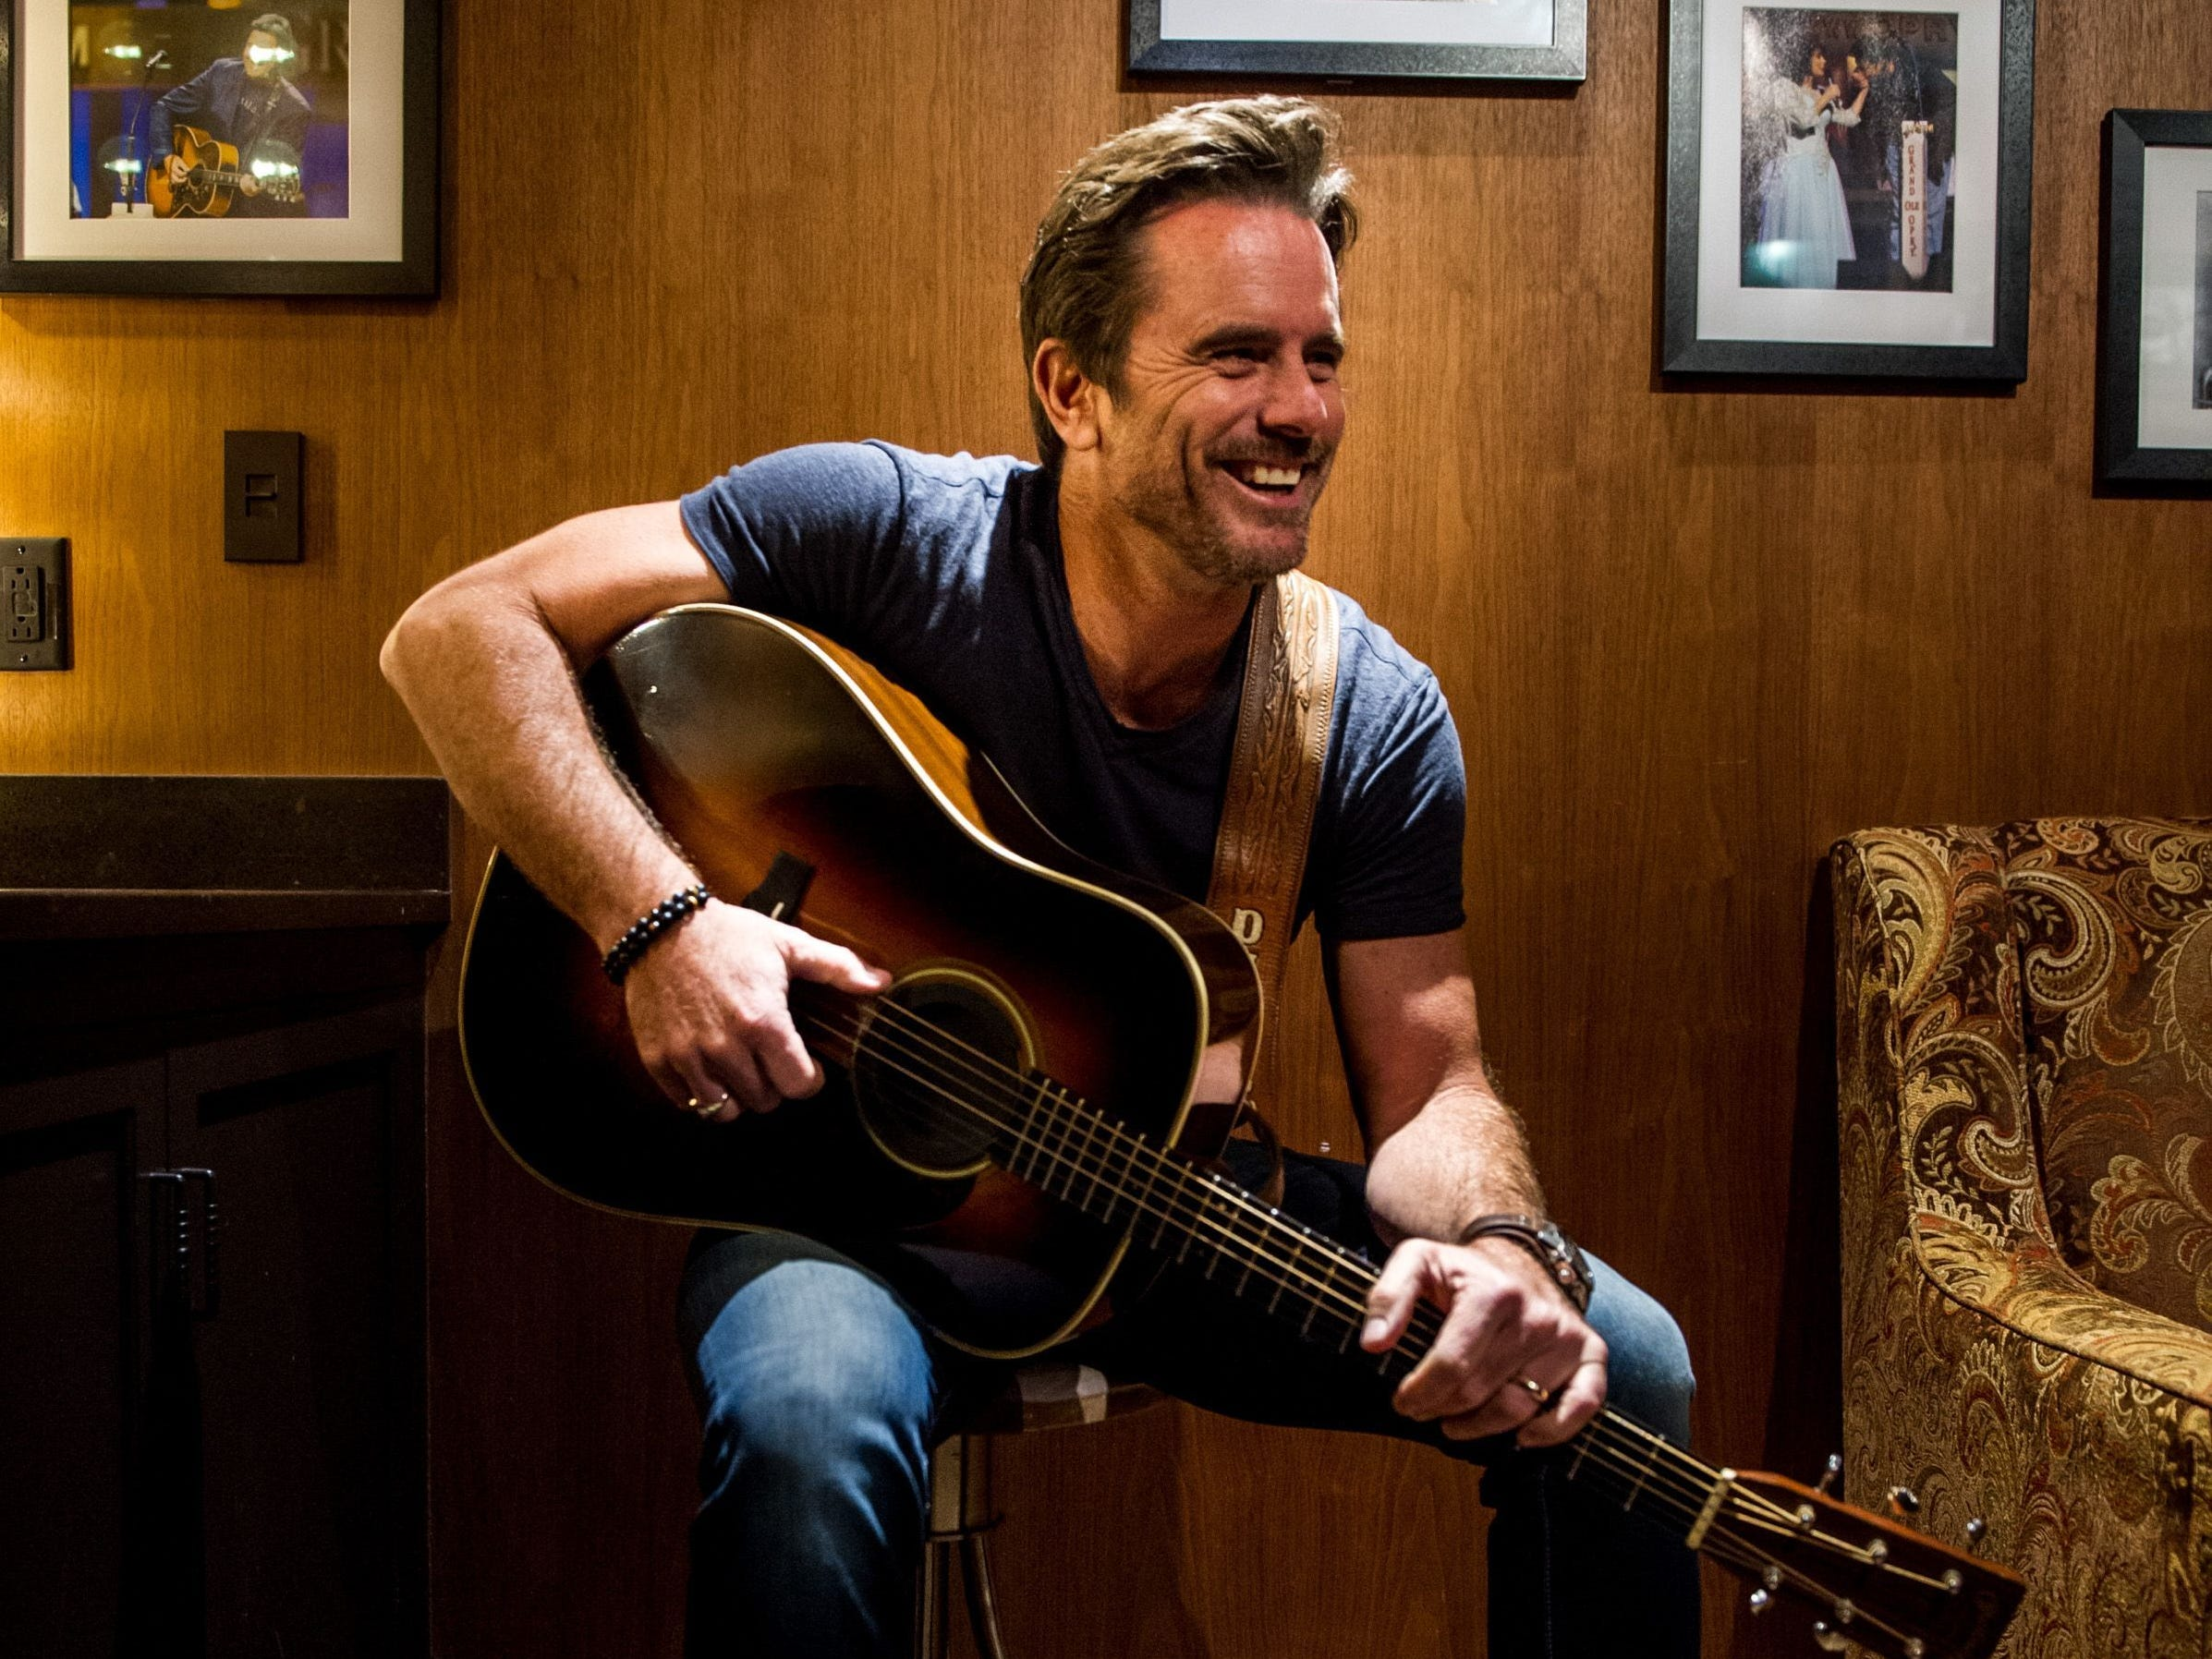 Charles Esten is scheduled to play the Budweiser Forever Country Stage at CMA Fest 2019.